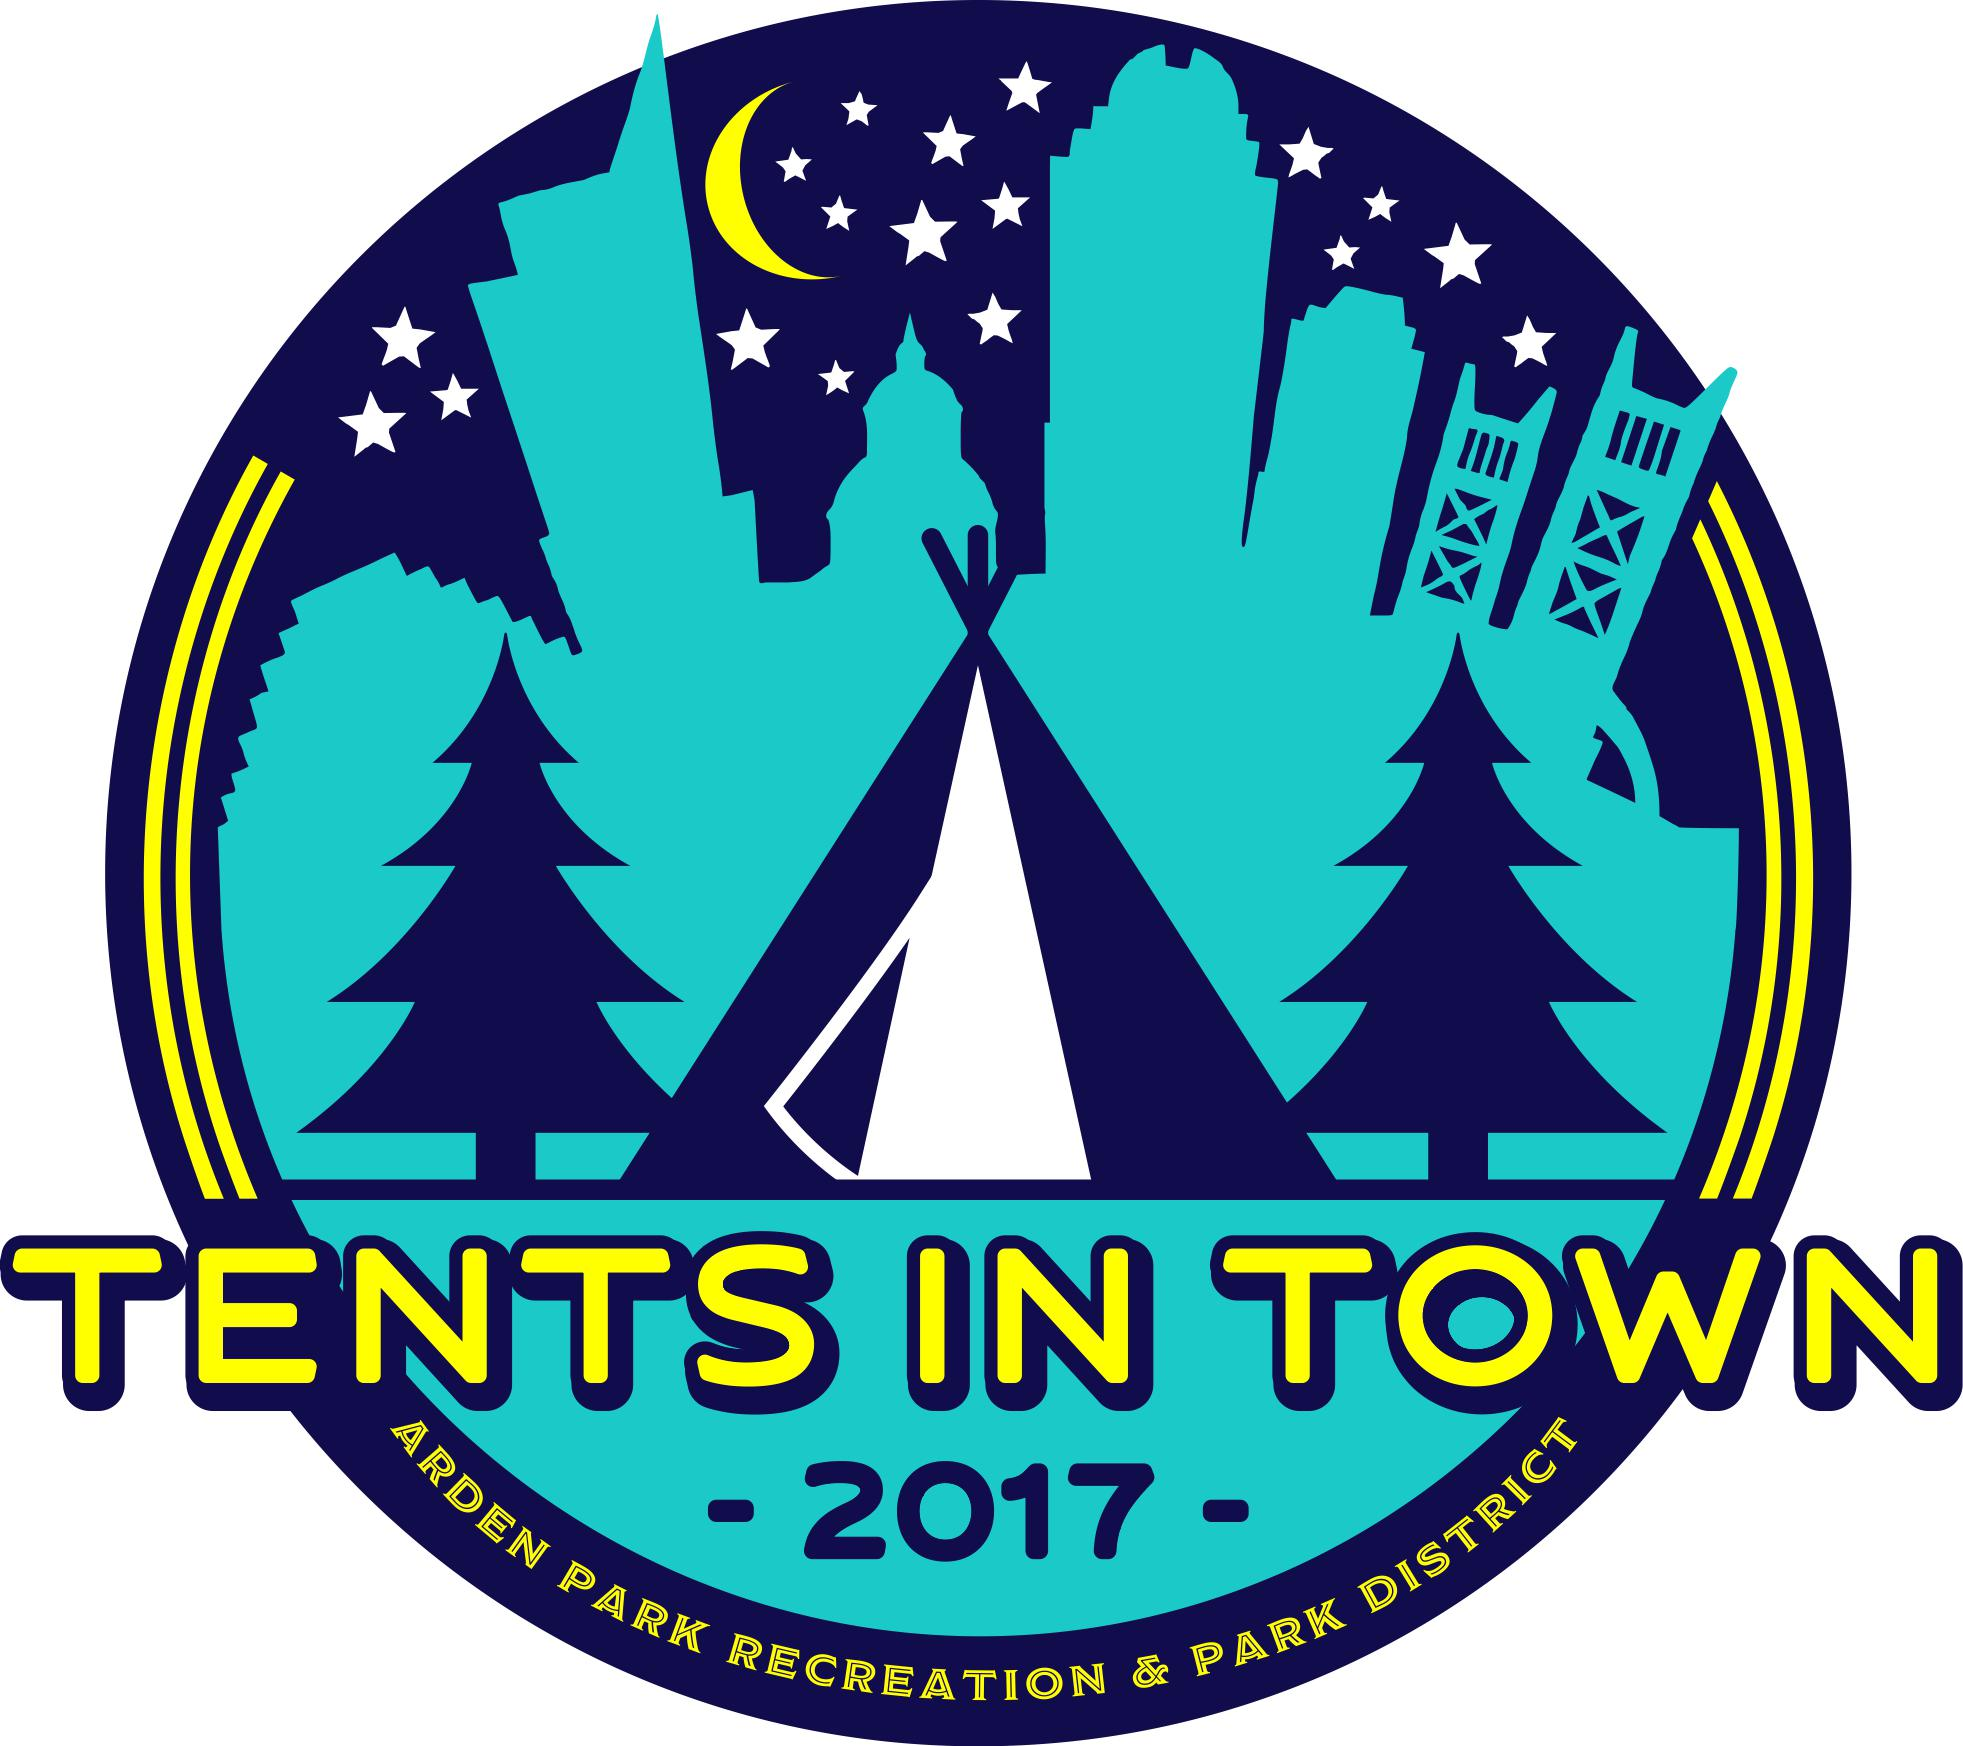 Arden Park Tents in Town